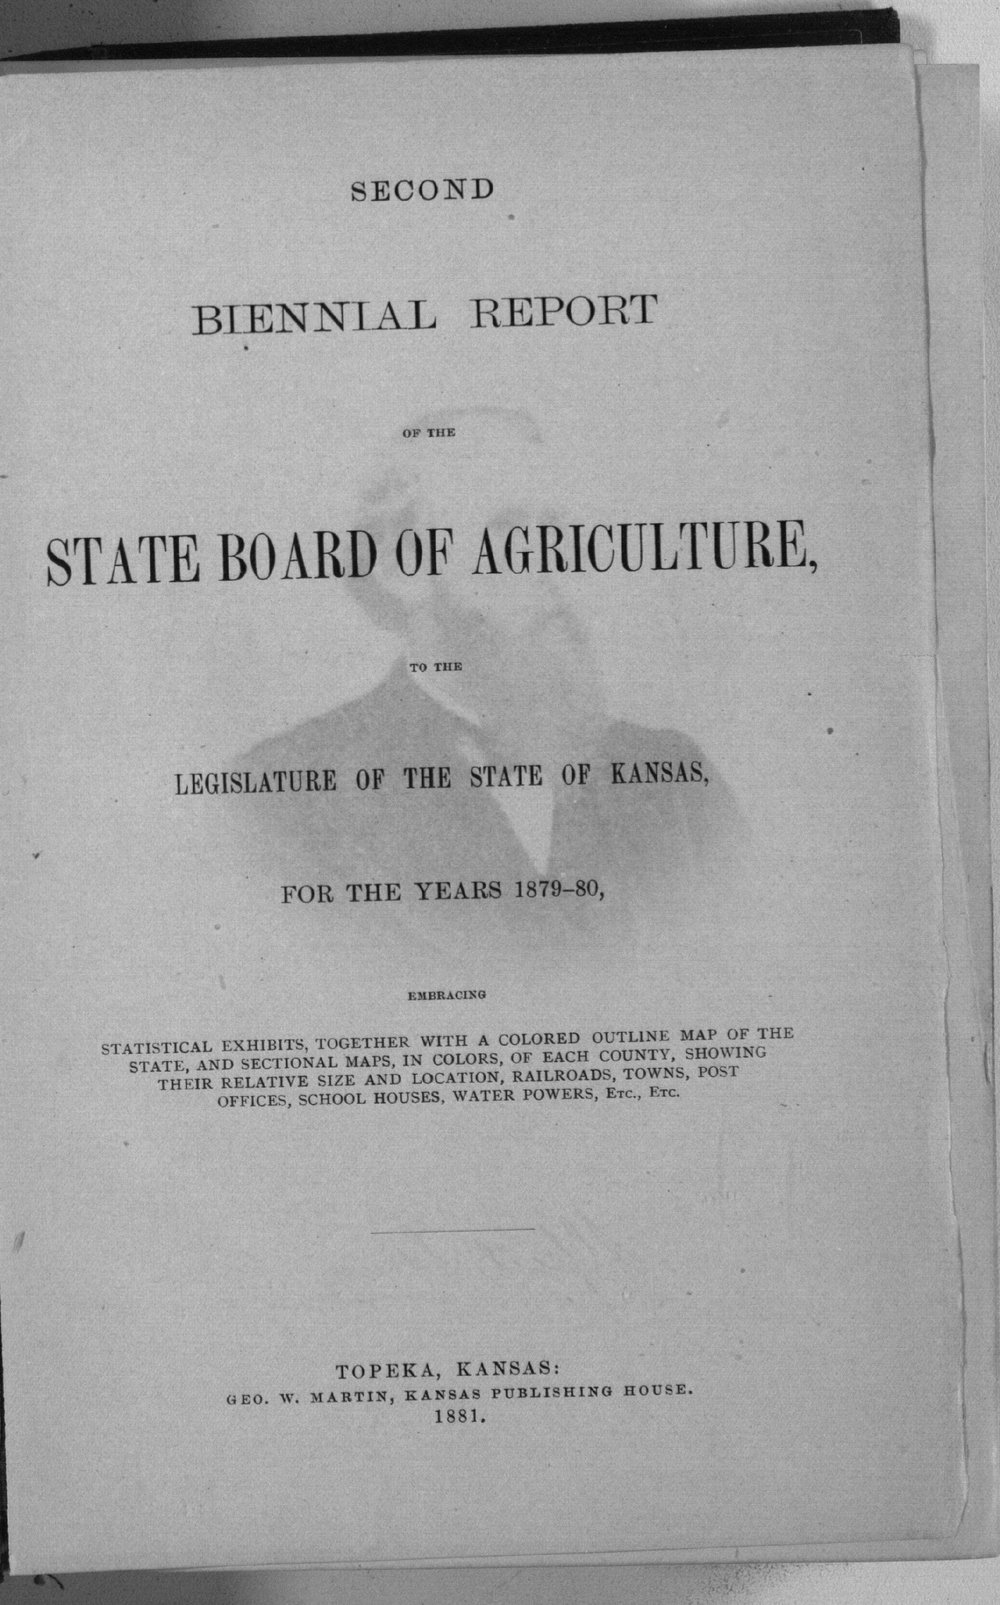 Second biennial report of the Kansas State Board of Agriculture, 1879-80 - Title Page, Second Biennial, v7, 1879-1880